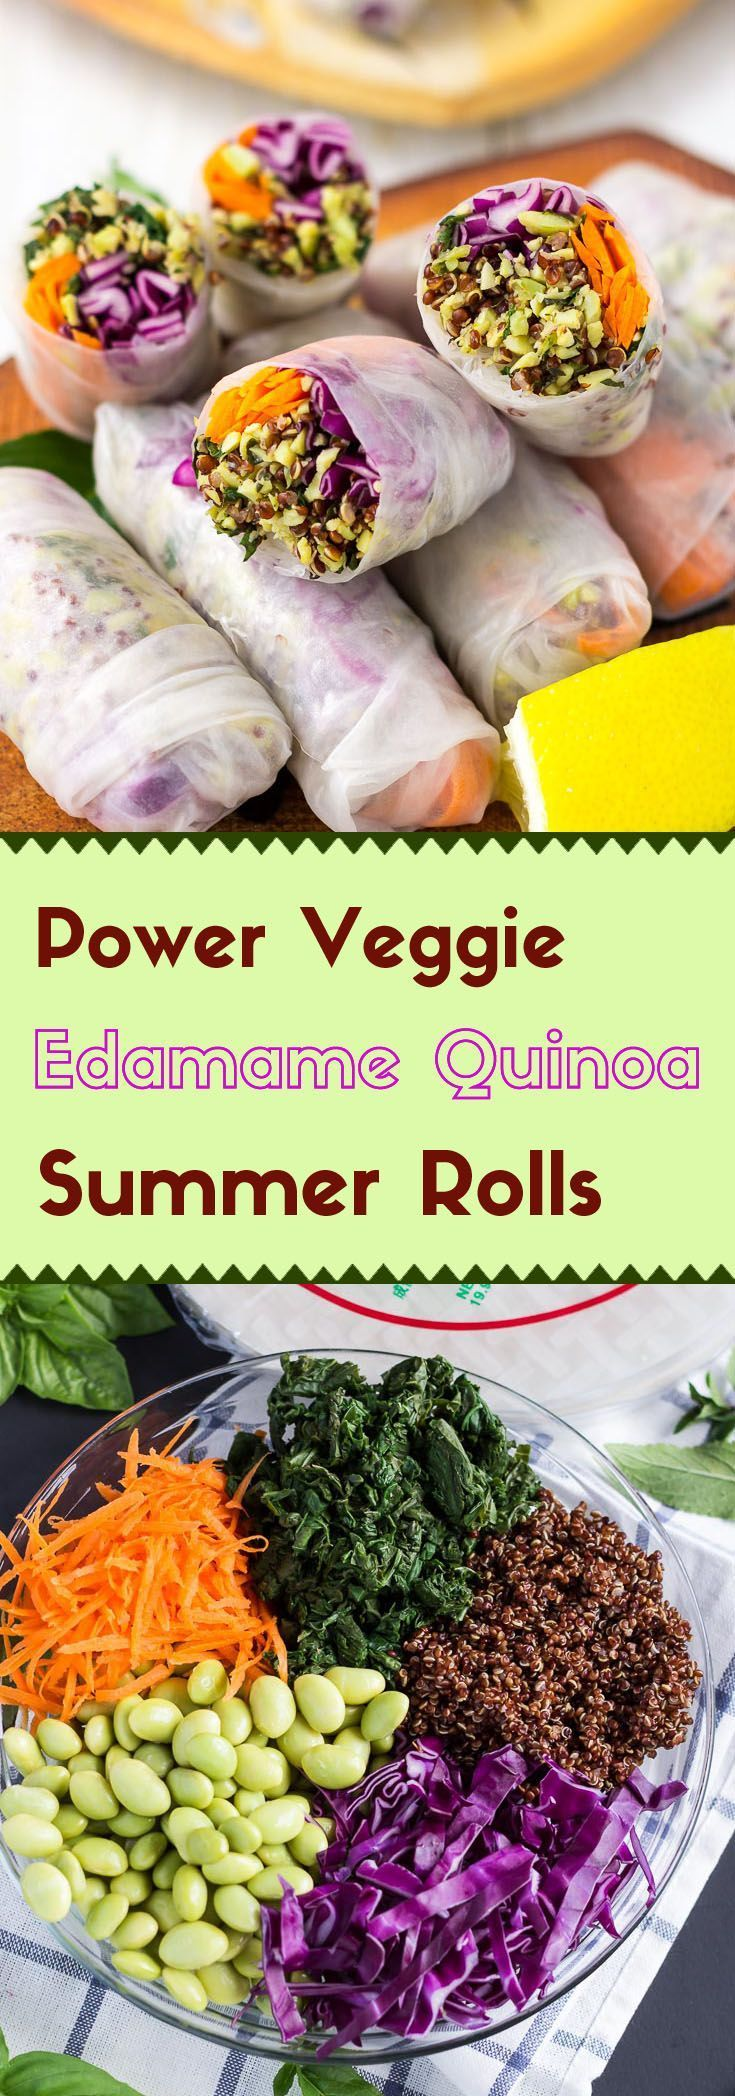 Are you looking for school lunch ideas? You're going to get excited about these edamame quinoa summer rolls with their minty, buttery crunch. (vegan, gluten-free)